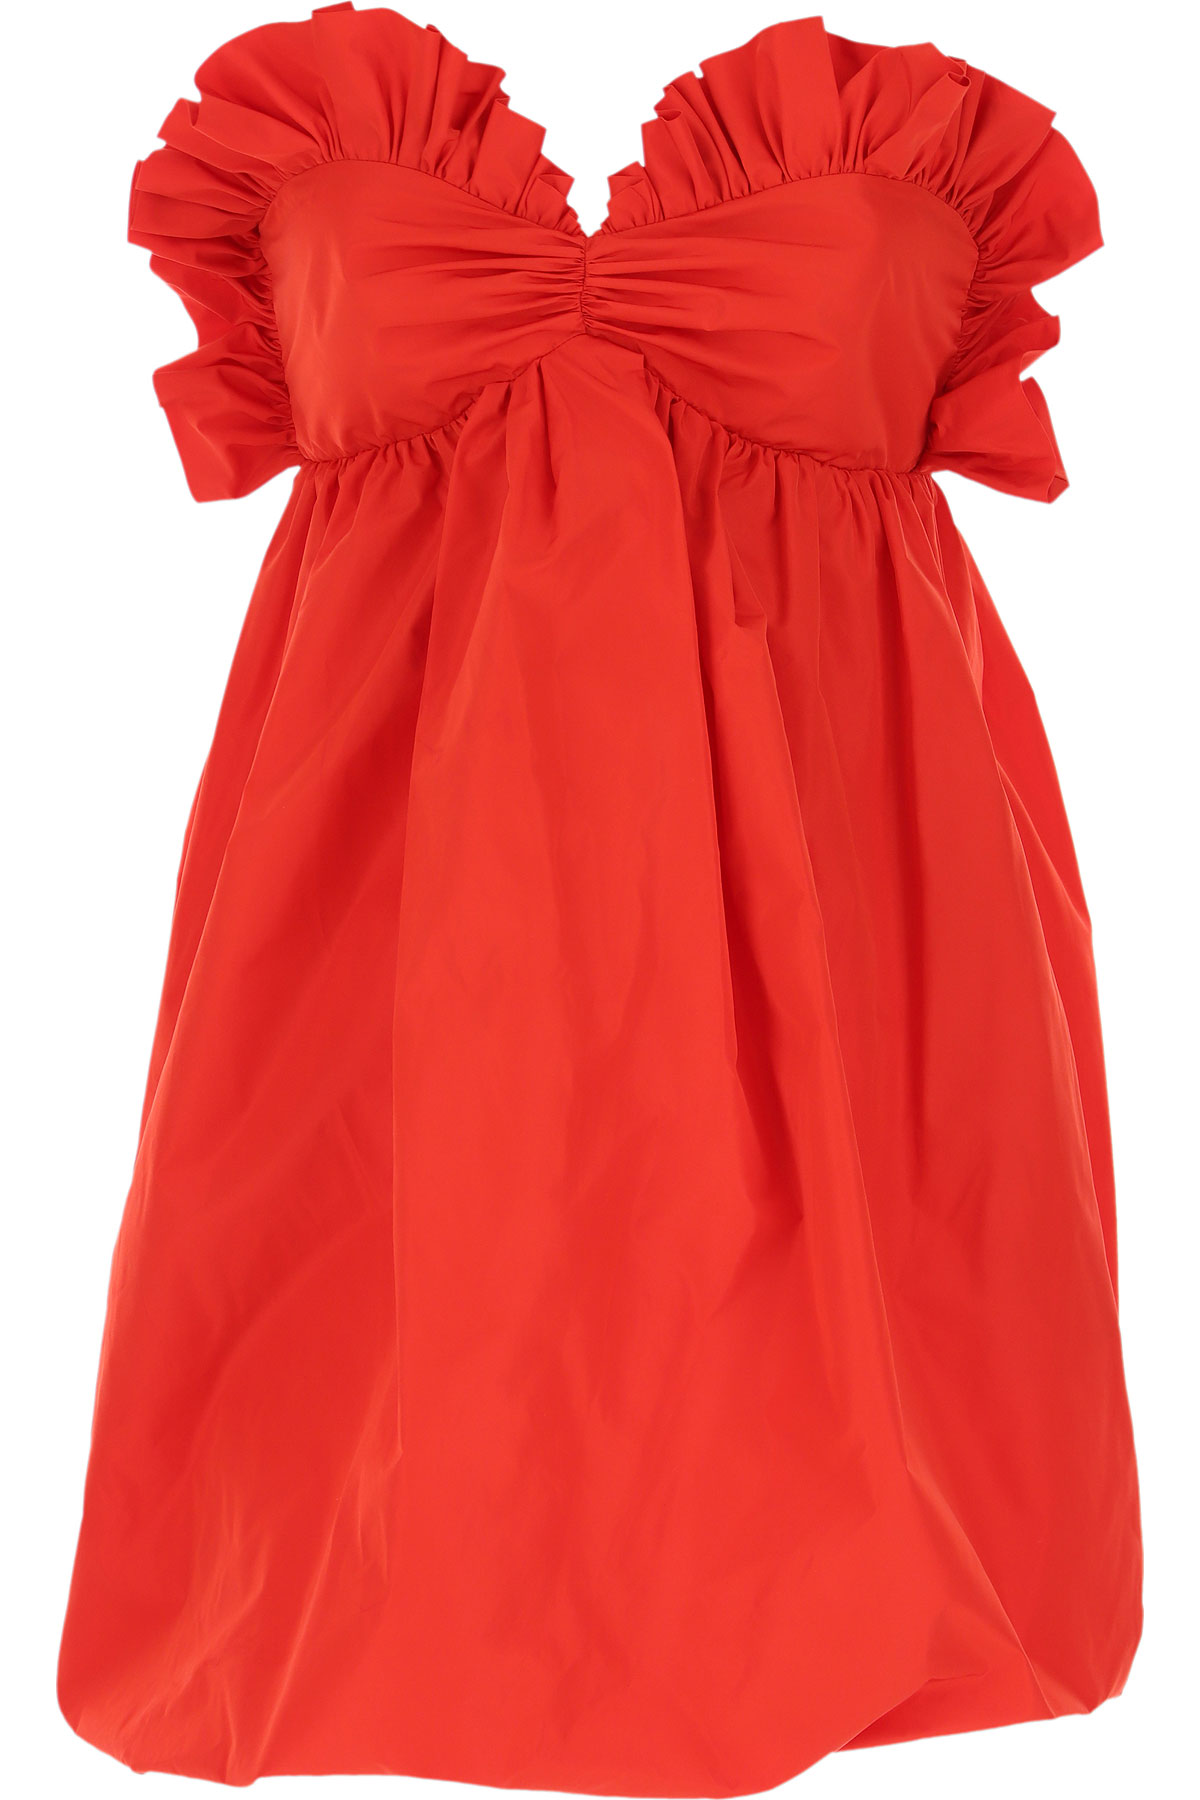 Philosophy di Lorenzo Serafini Dress for Women, Evening Cocktail Party On Sale, Red, polyester, 2019, 2 4 6